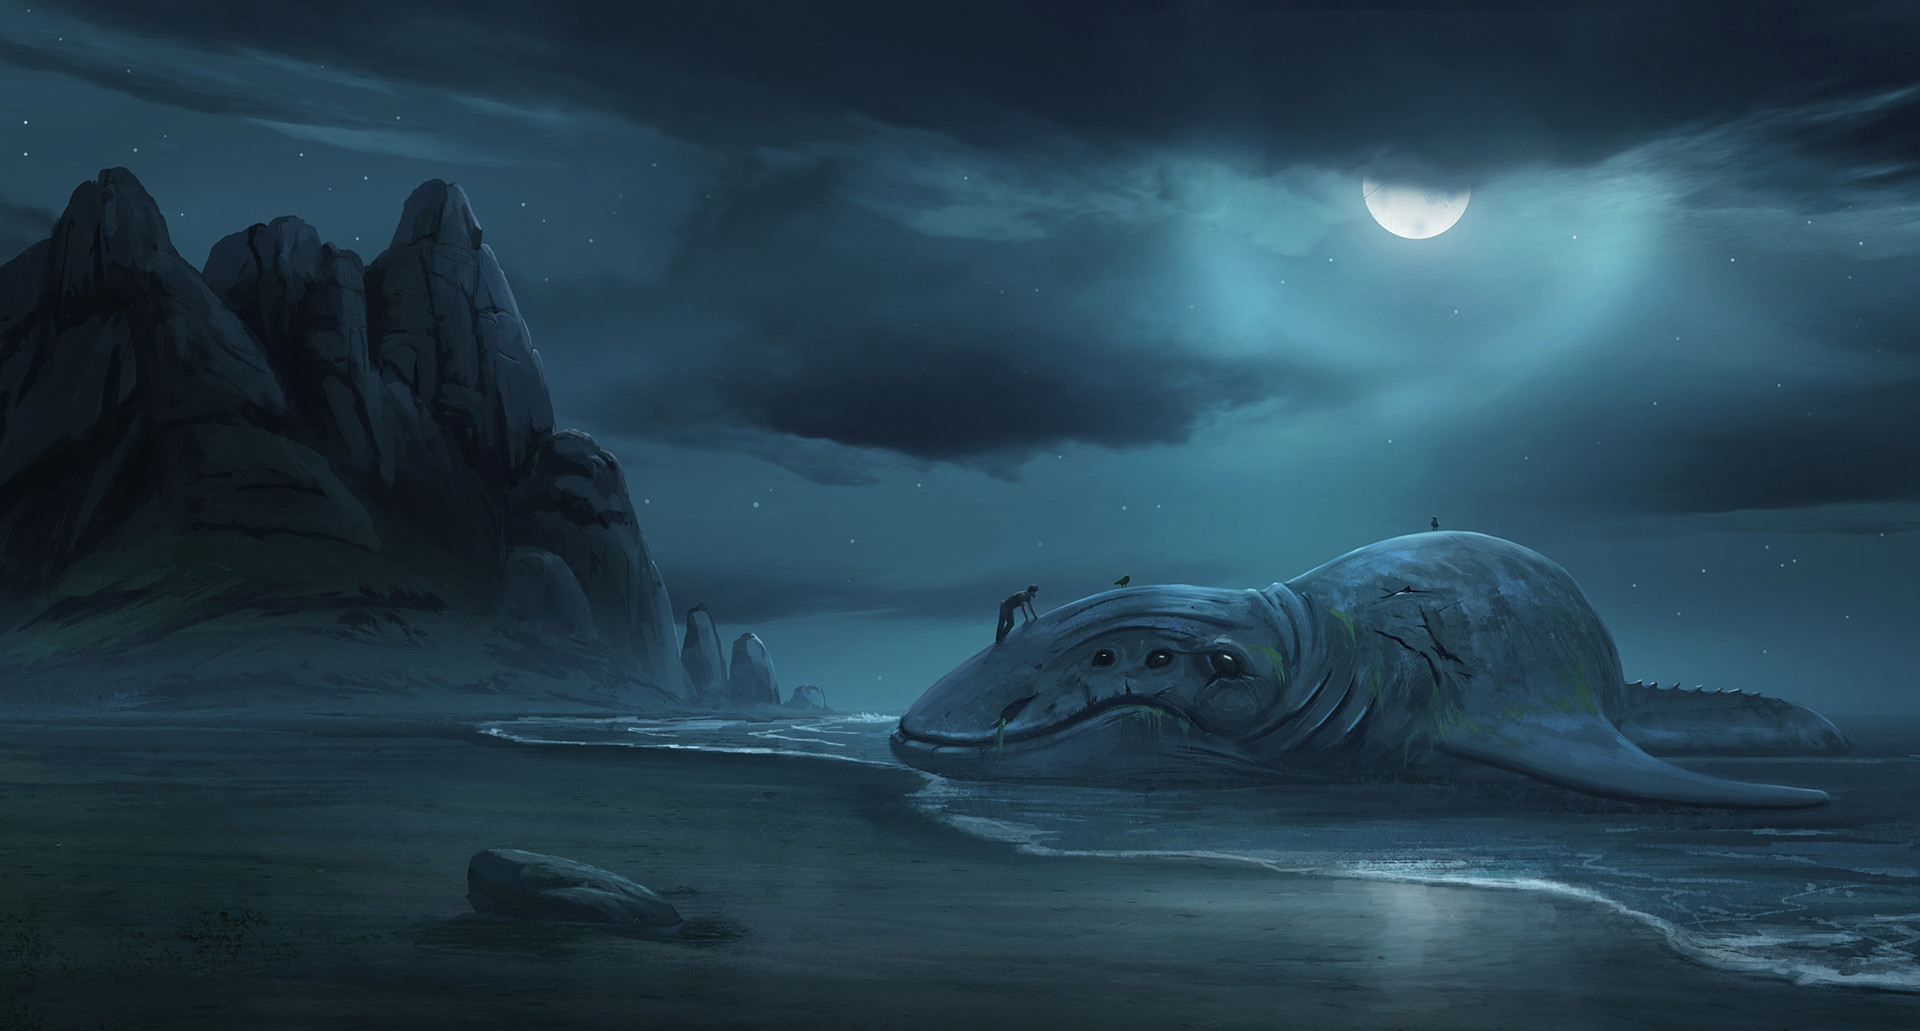 Surendra rajawat sea monster night